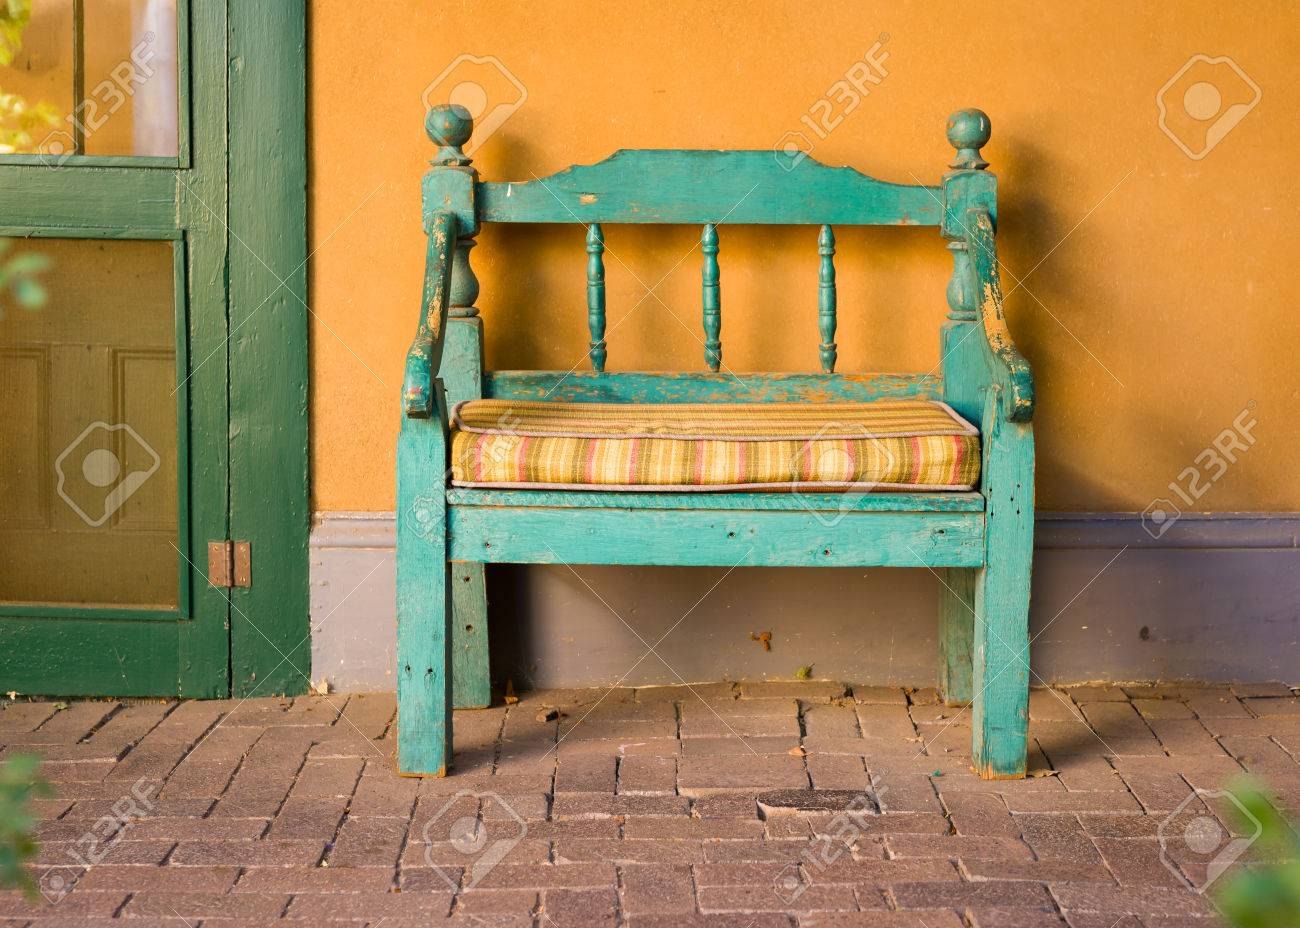 Antique Wooden Bench Outside Of A Garden In Santa Fe NM Stock Photo   47339996 Antique Wooden Bench46